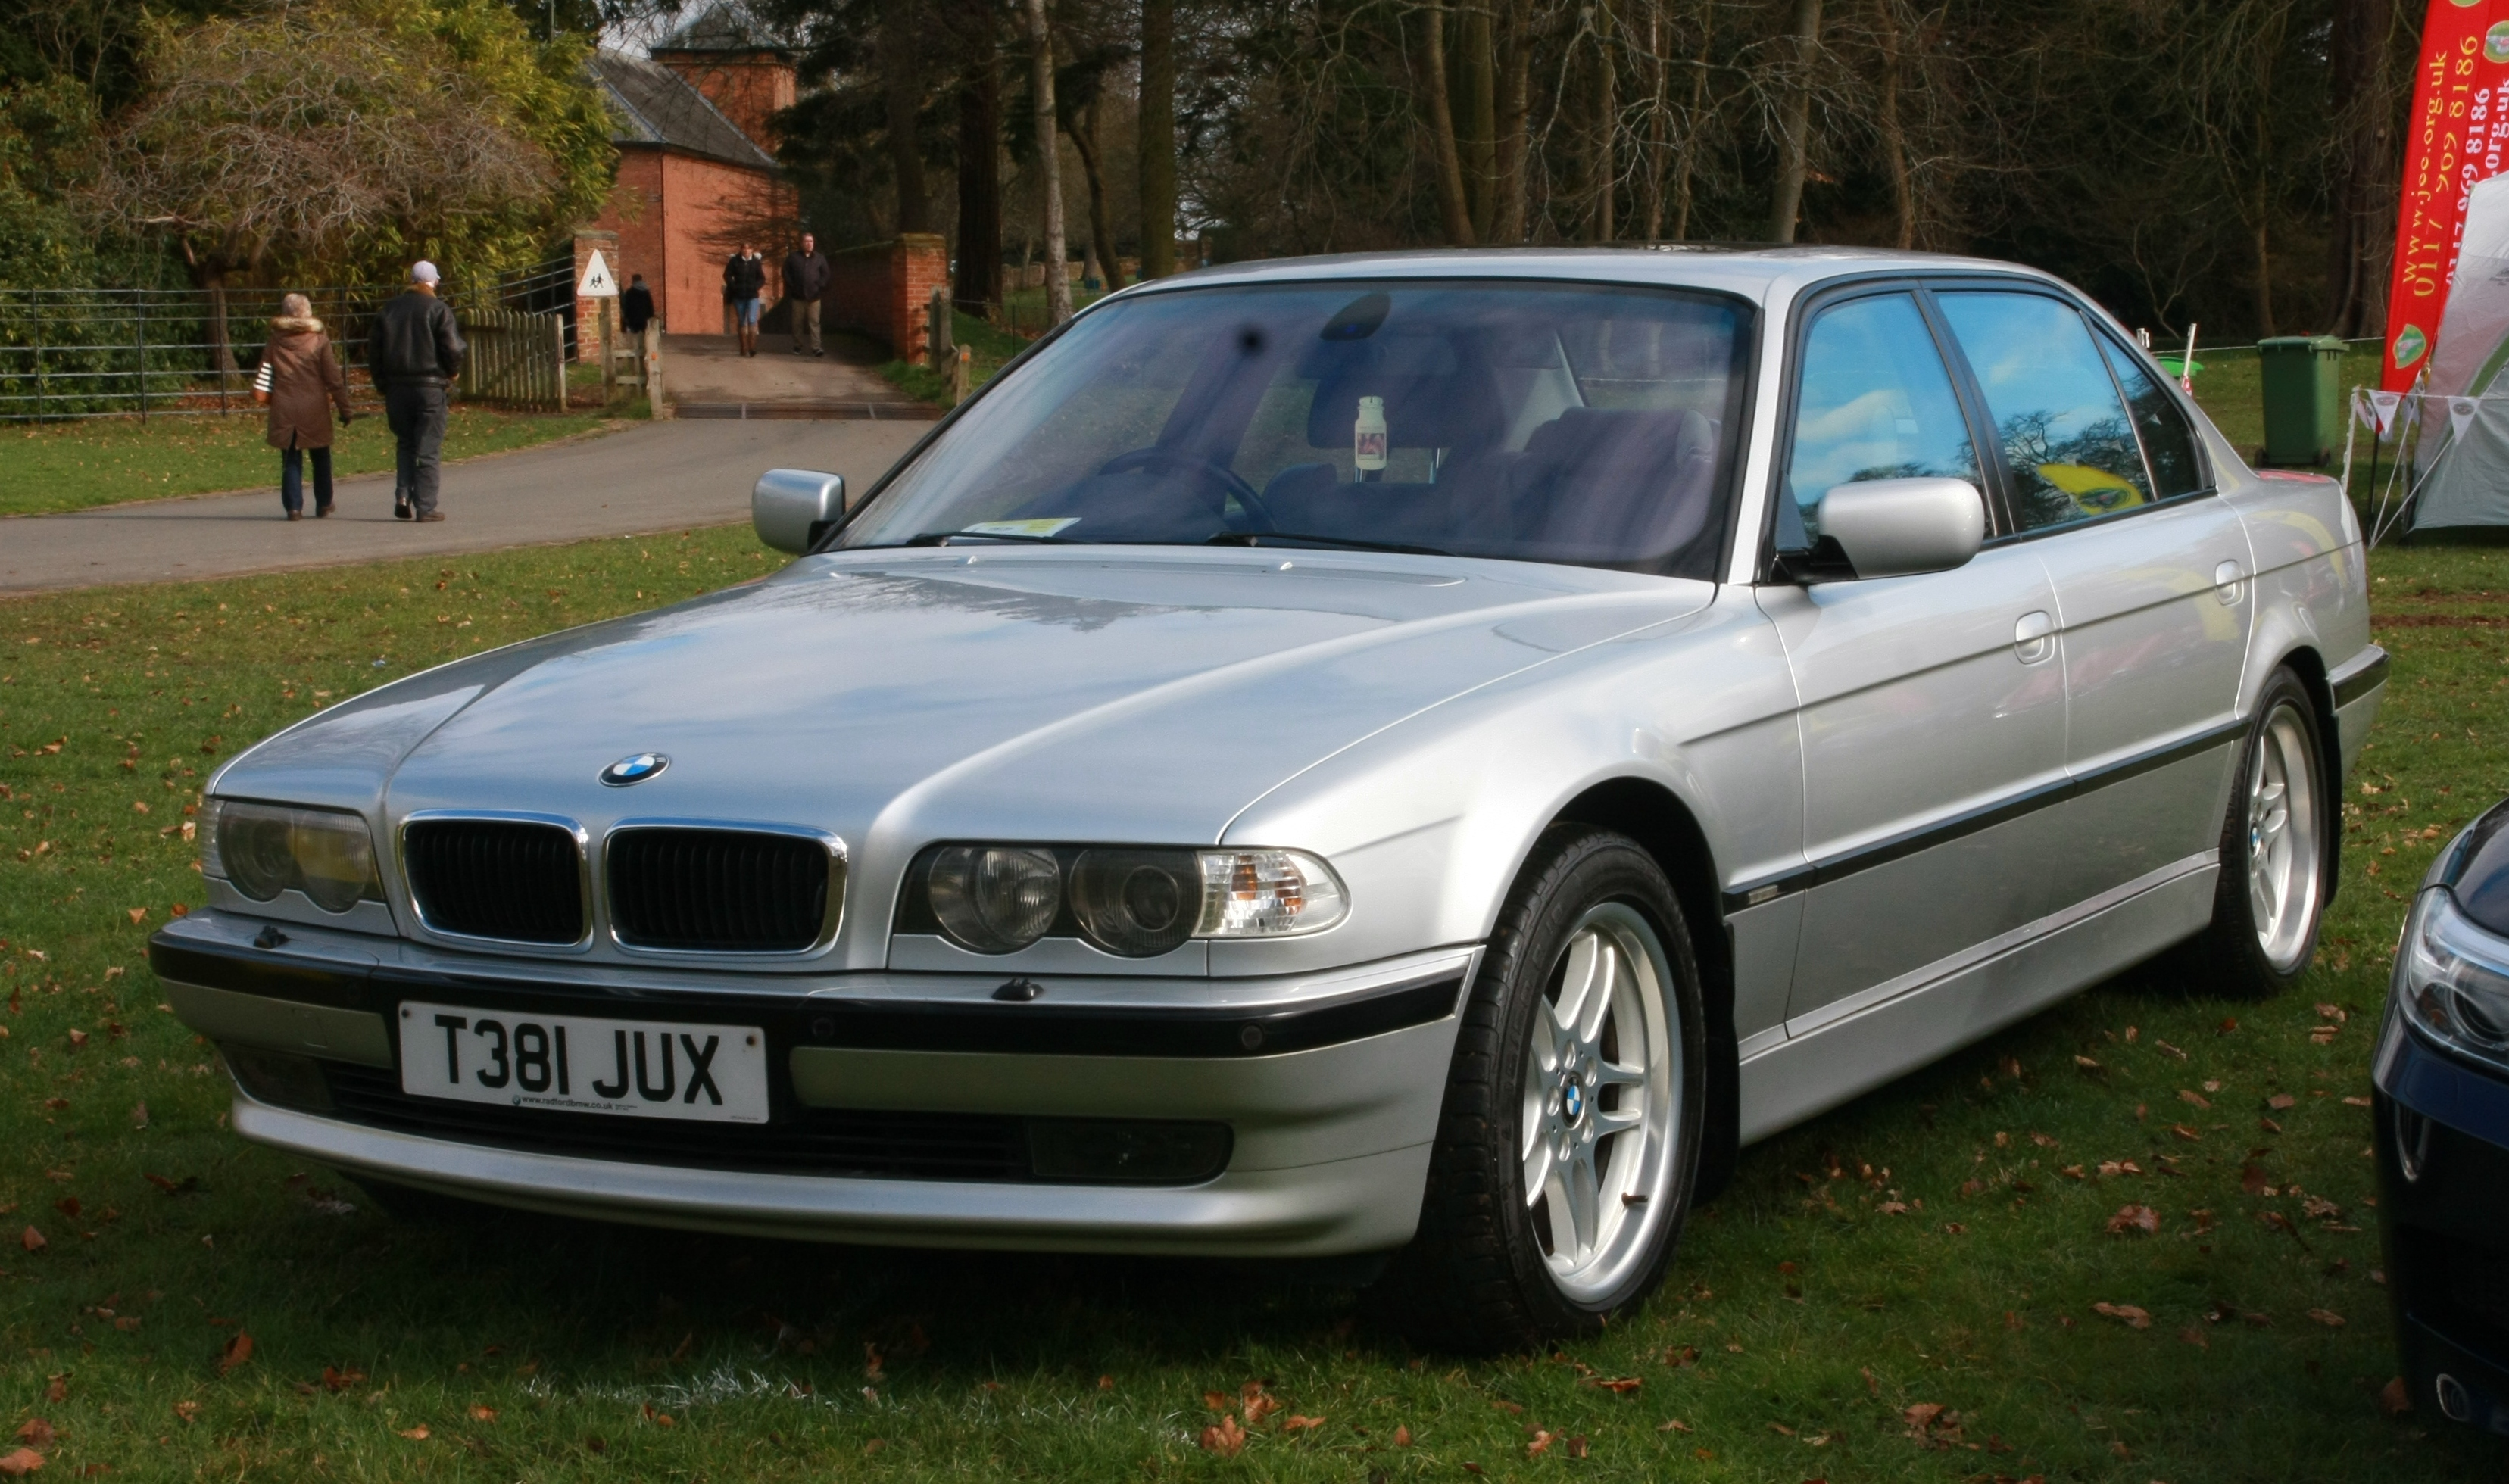 File Bmw 740i 4398cc Registered March 1999 Jpg Wikimedia Commons